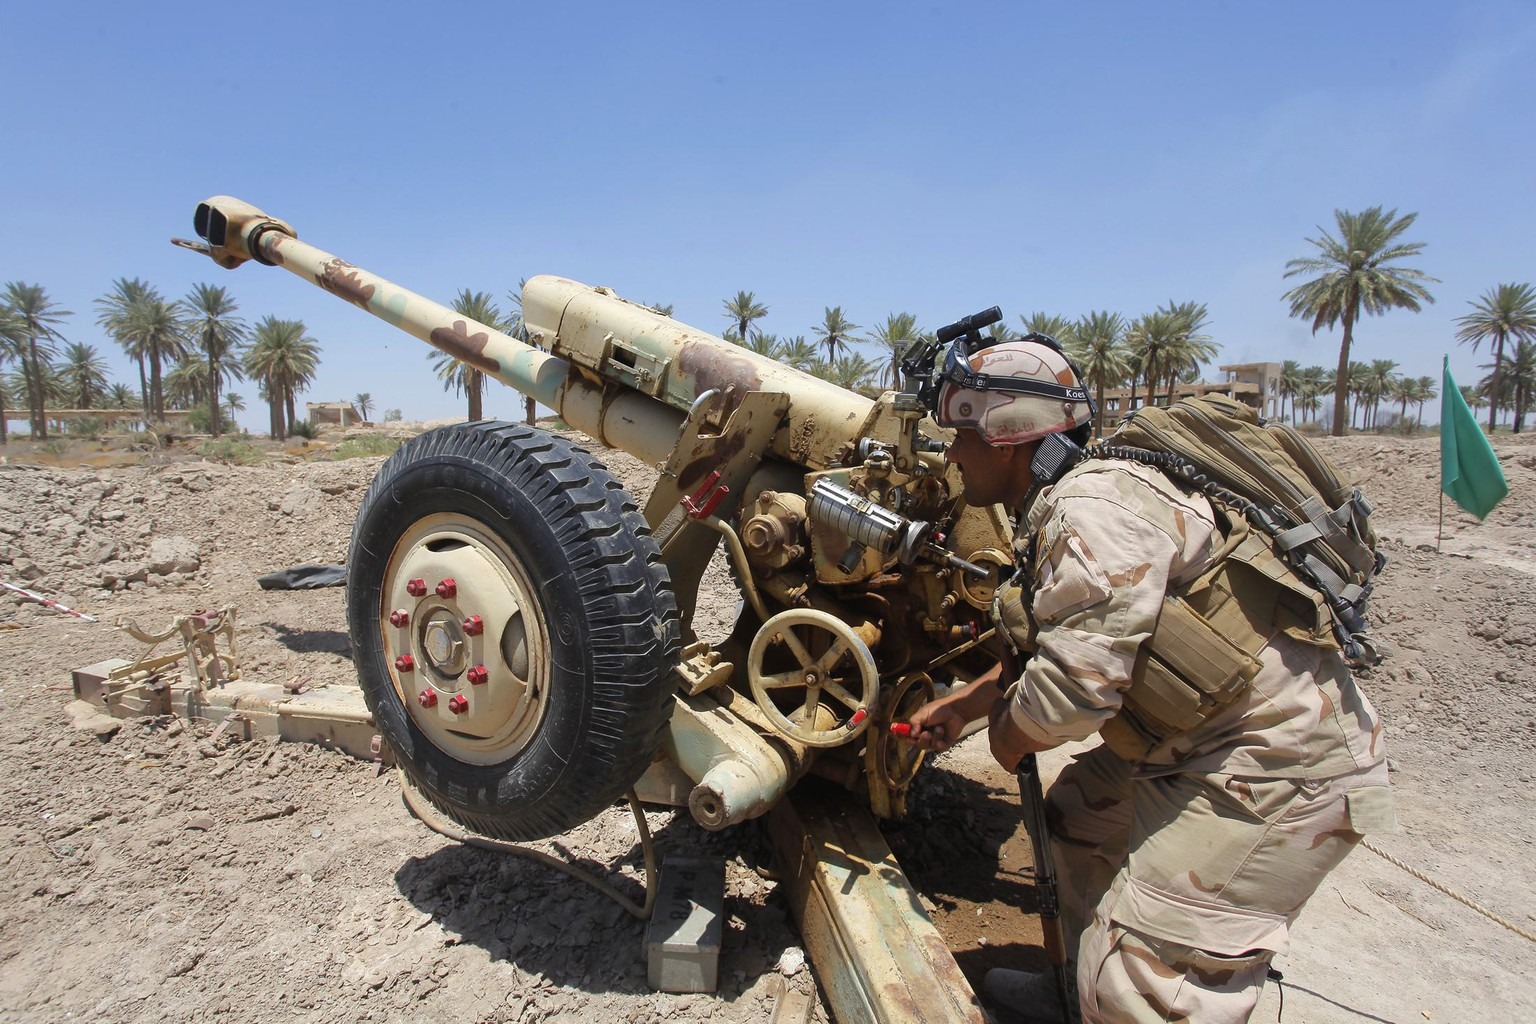 Iraqi security forces fire artillery during clashes with Sunni militant group Islamic State of Iraq and the Levant (ISIL) in Jurf al-Sakhar June 14, 2014. Picture taken June 14, 2014. REUTERS/Alaa Al-Marjani (IRAQ - Tags: CIVIL UNREST POLITICS)